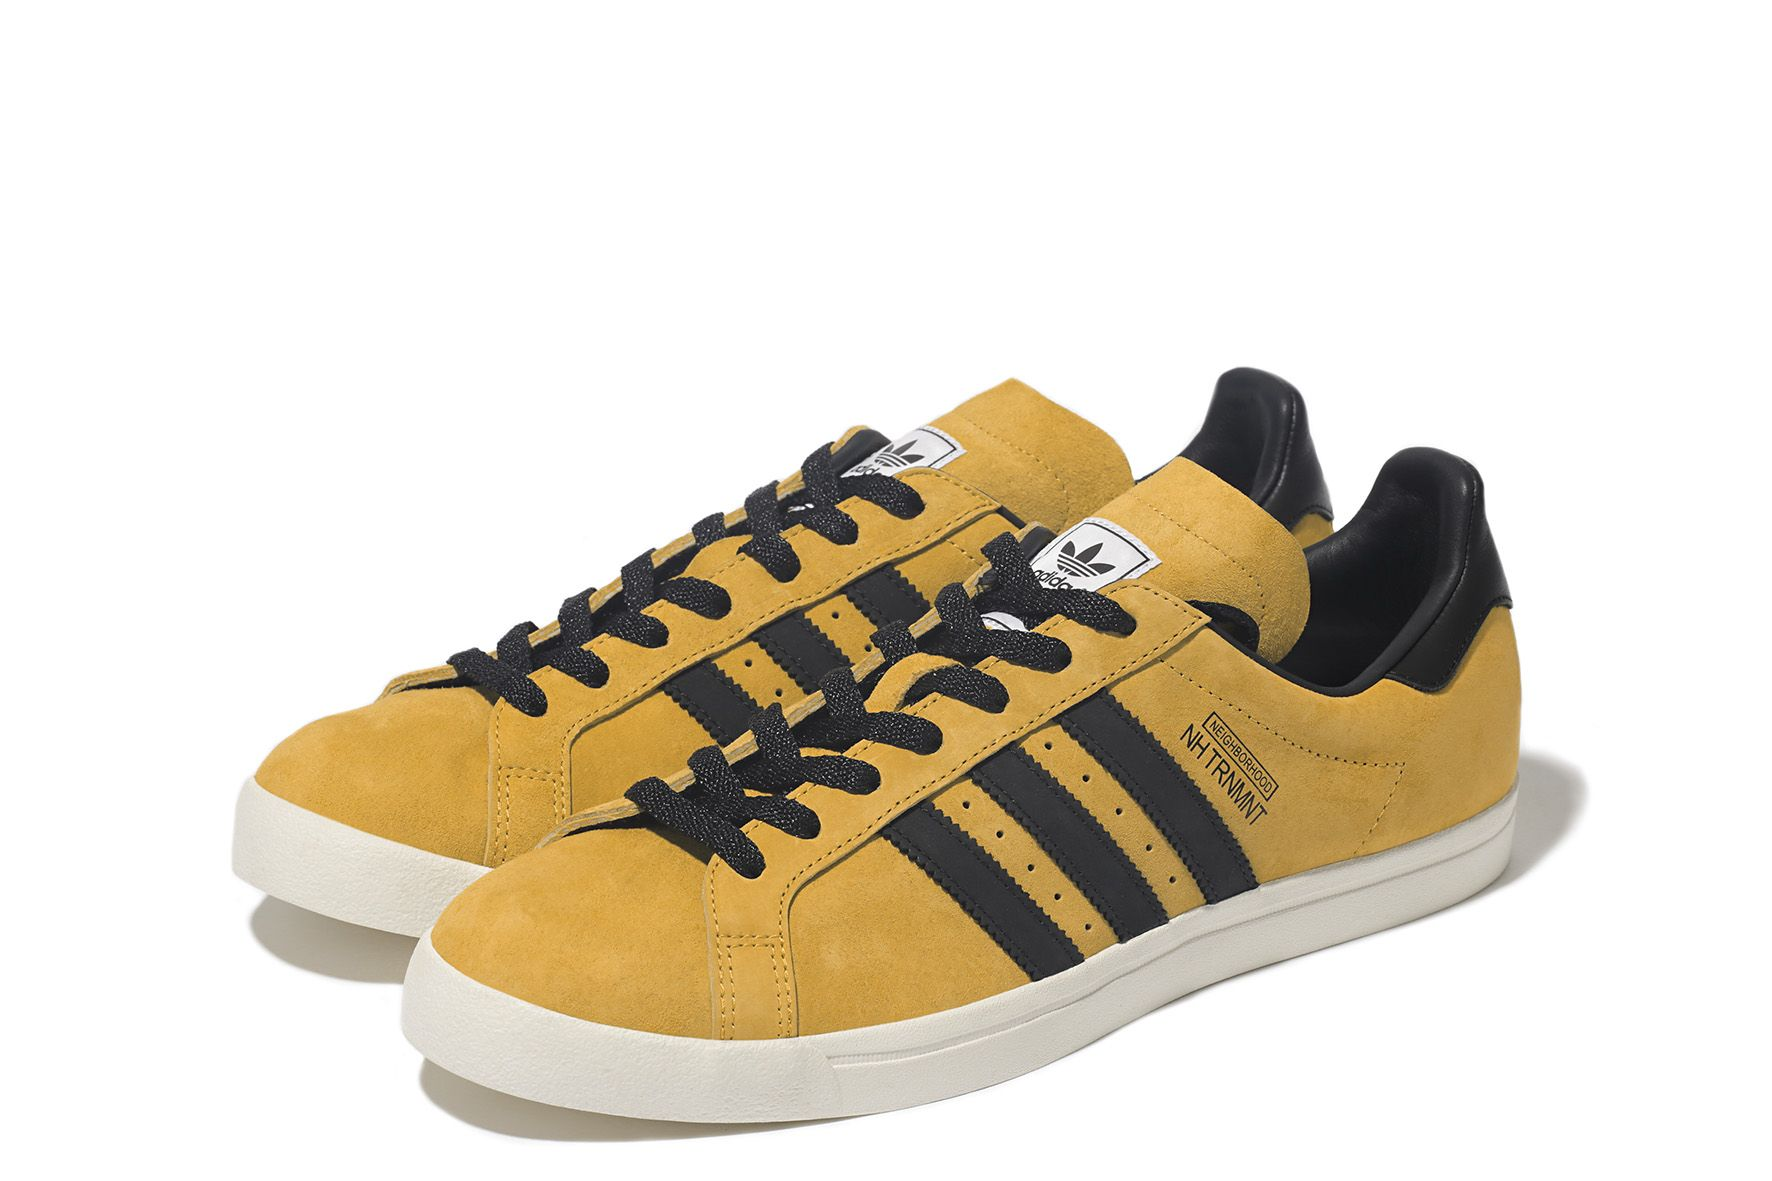 separation shoes ae7e0 488bb NHTRNMNTYELLOW Mens Fashion Casual Wear, Spring Summer 2015, The  Neighbourhood, Adidas Originals,